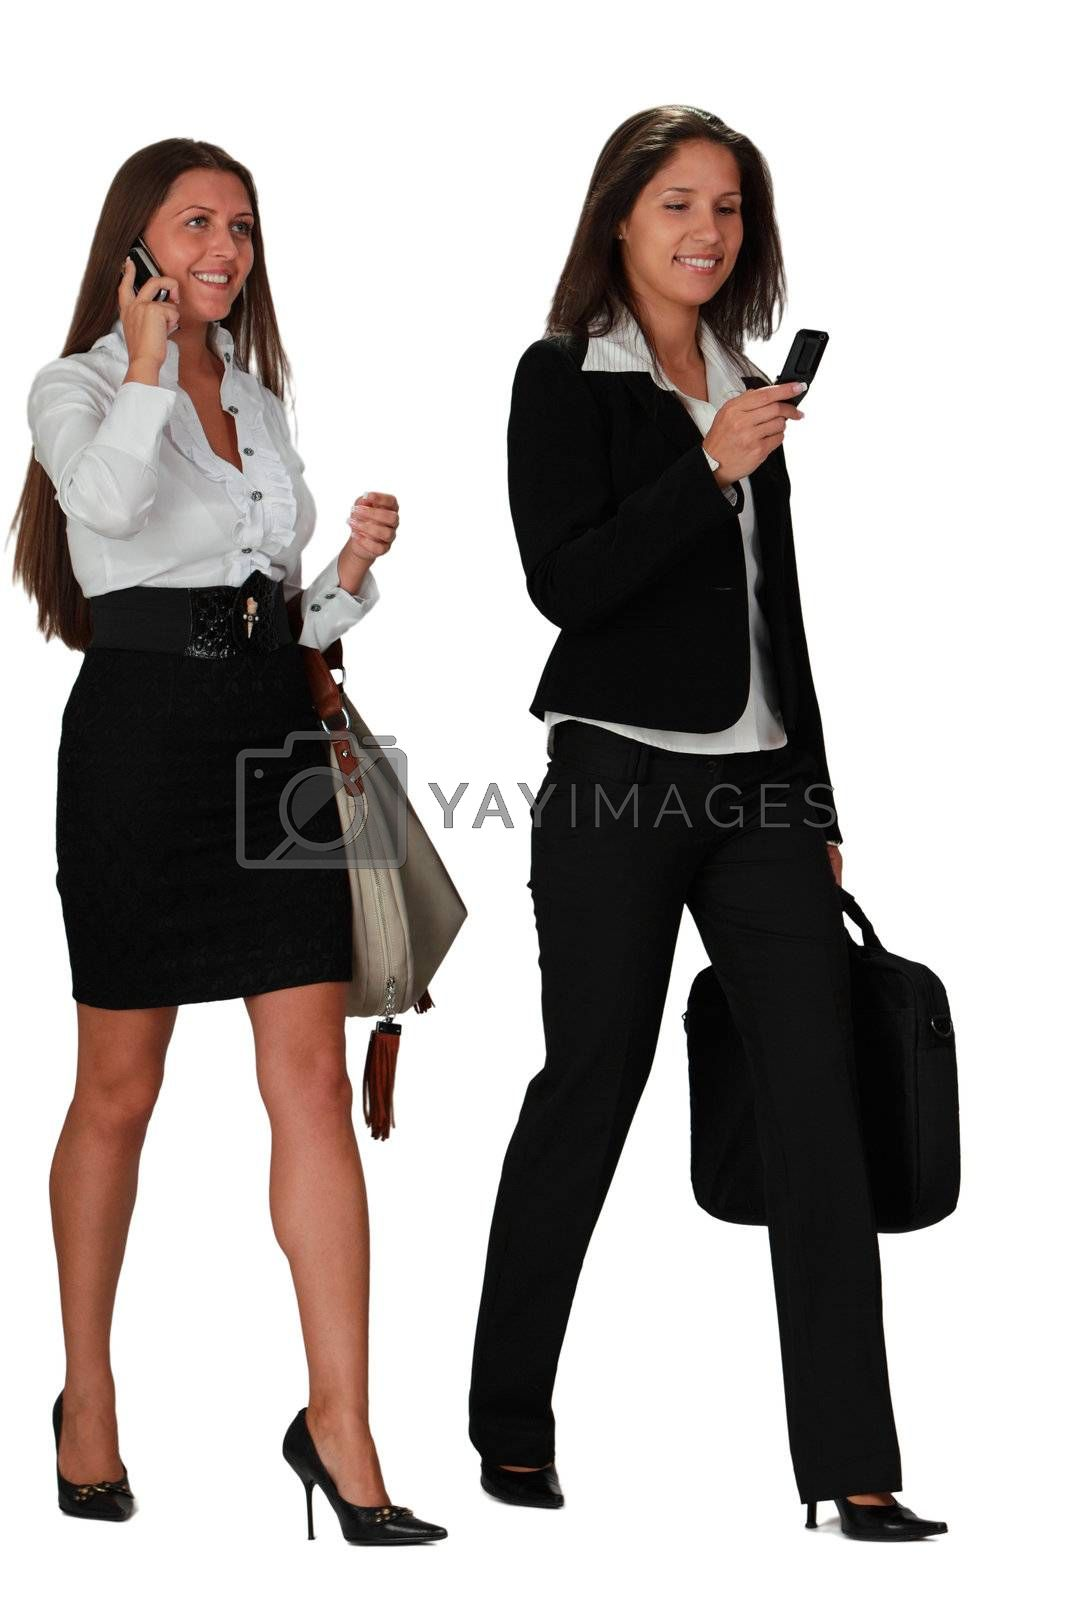 Two young women walking while using mobile phones,isolated against a white background.